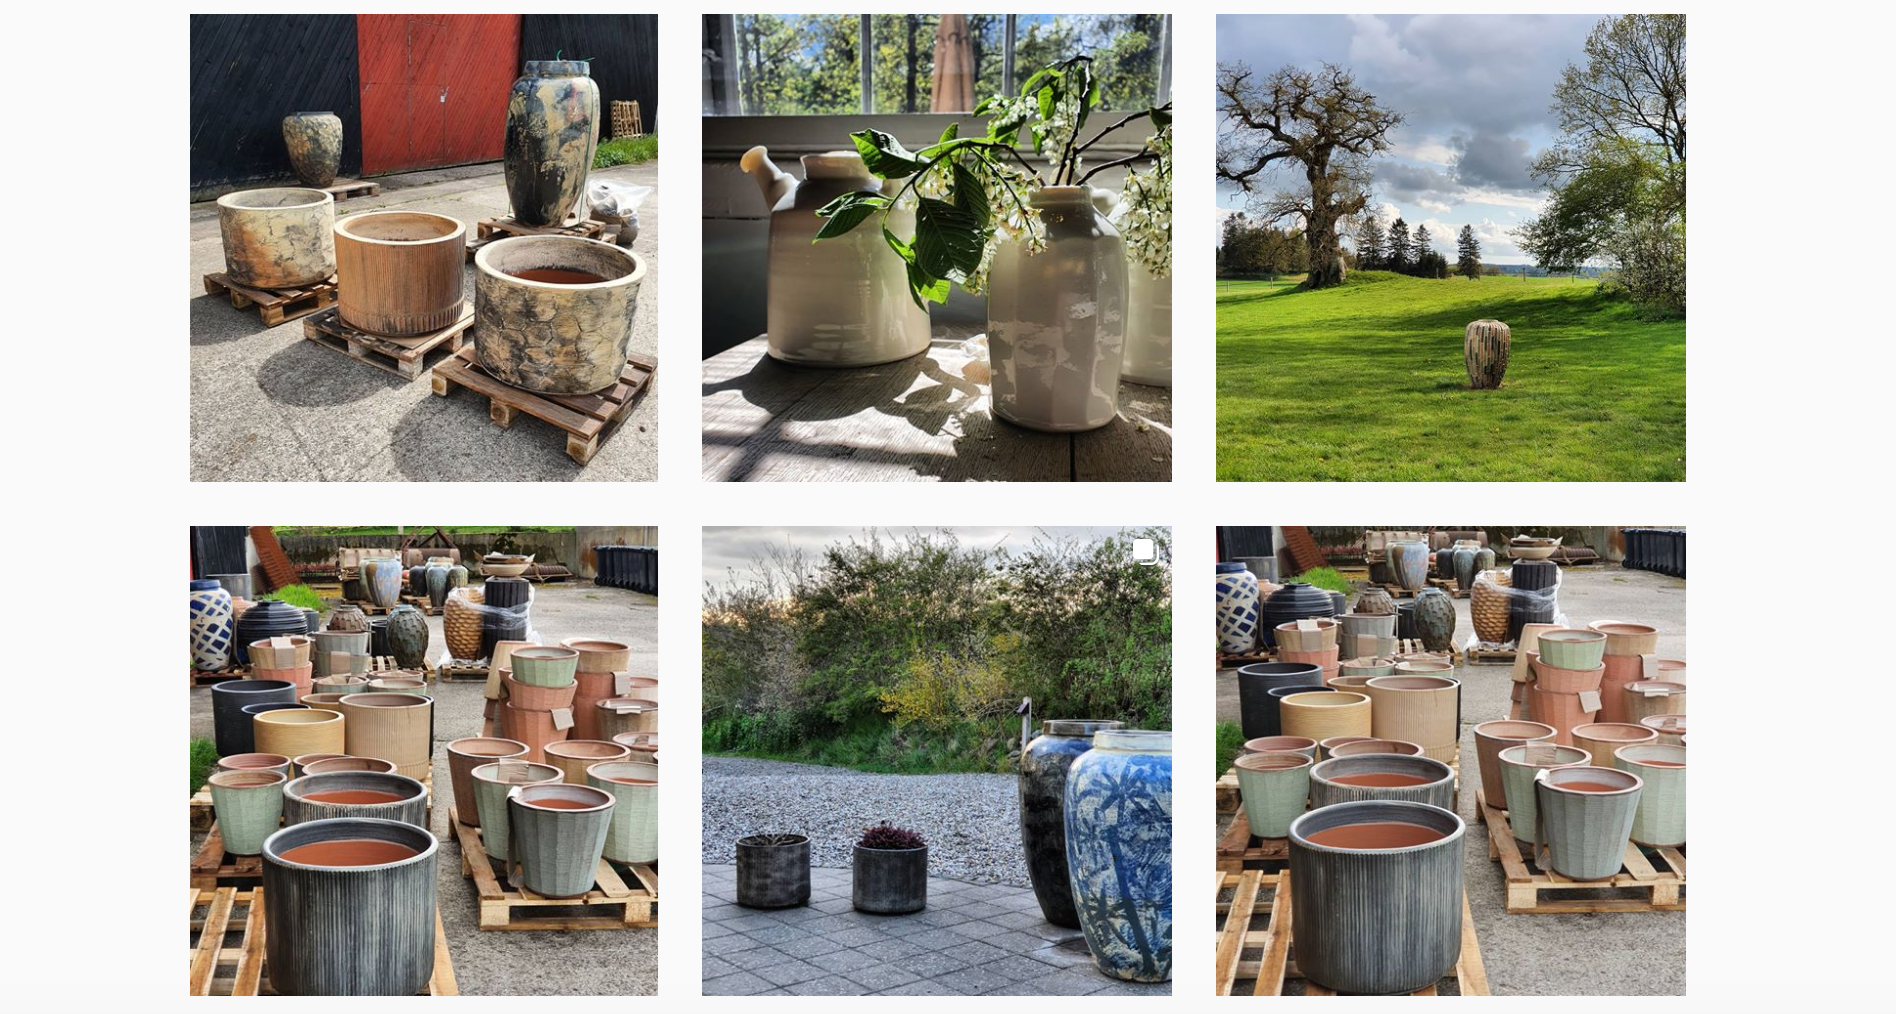 Ceramist Christian Bruun offers ceramics courses in Charlottenlund.